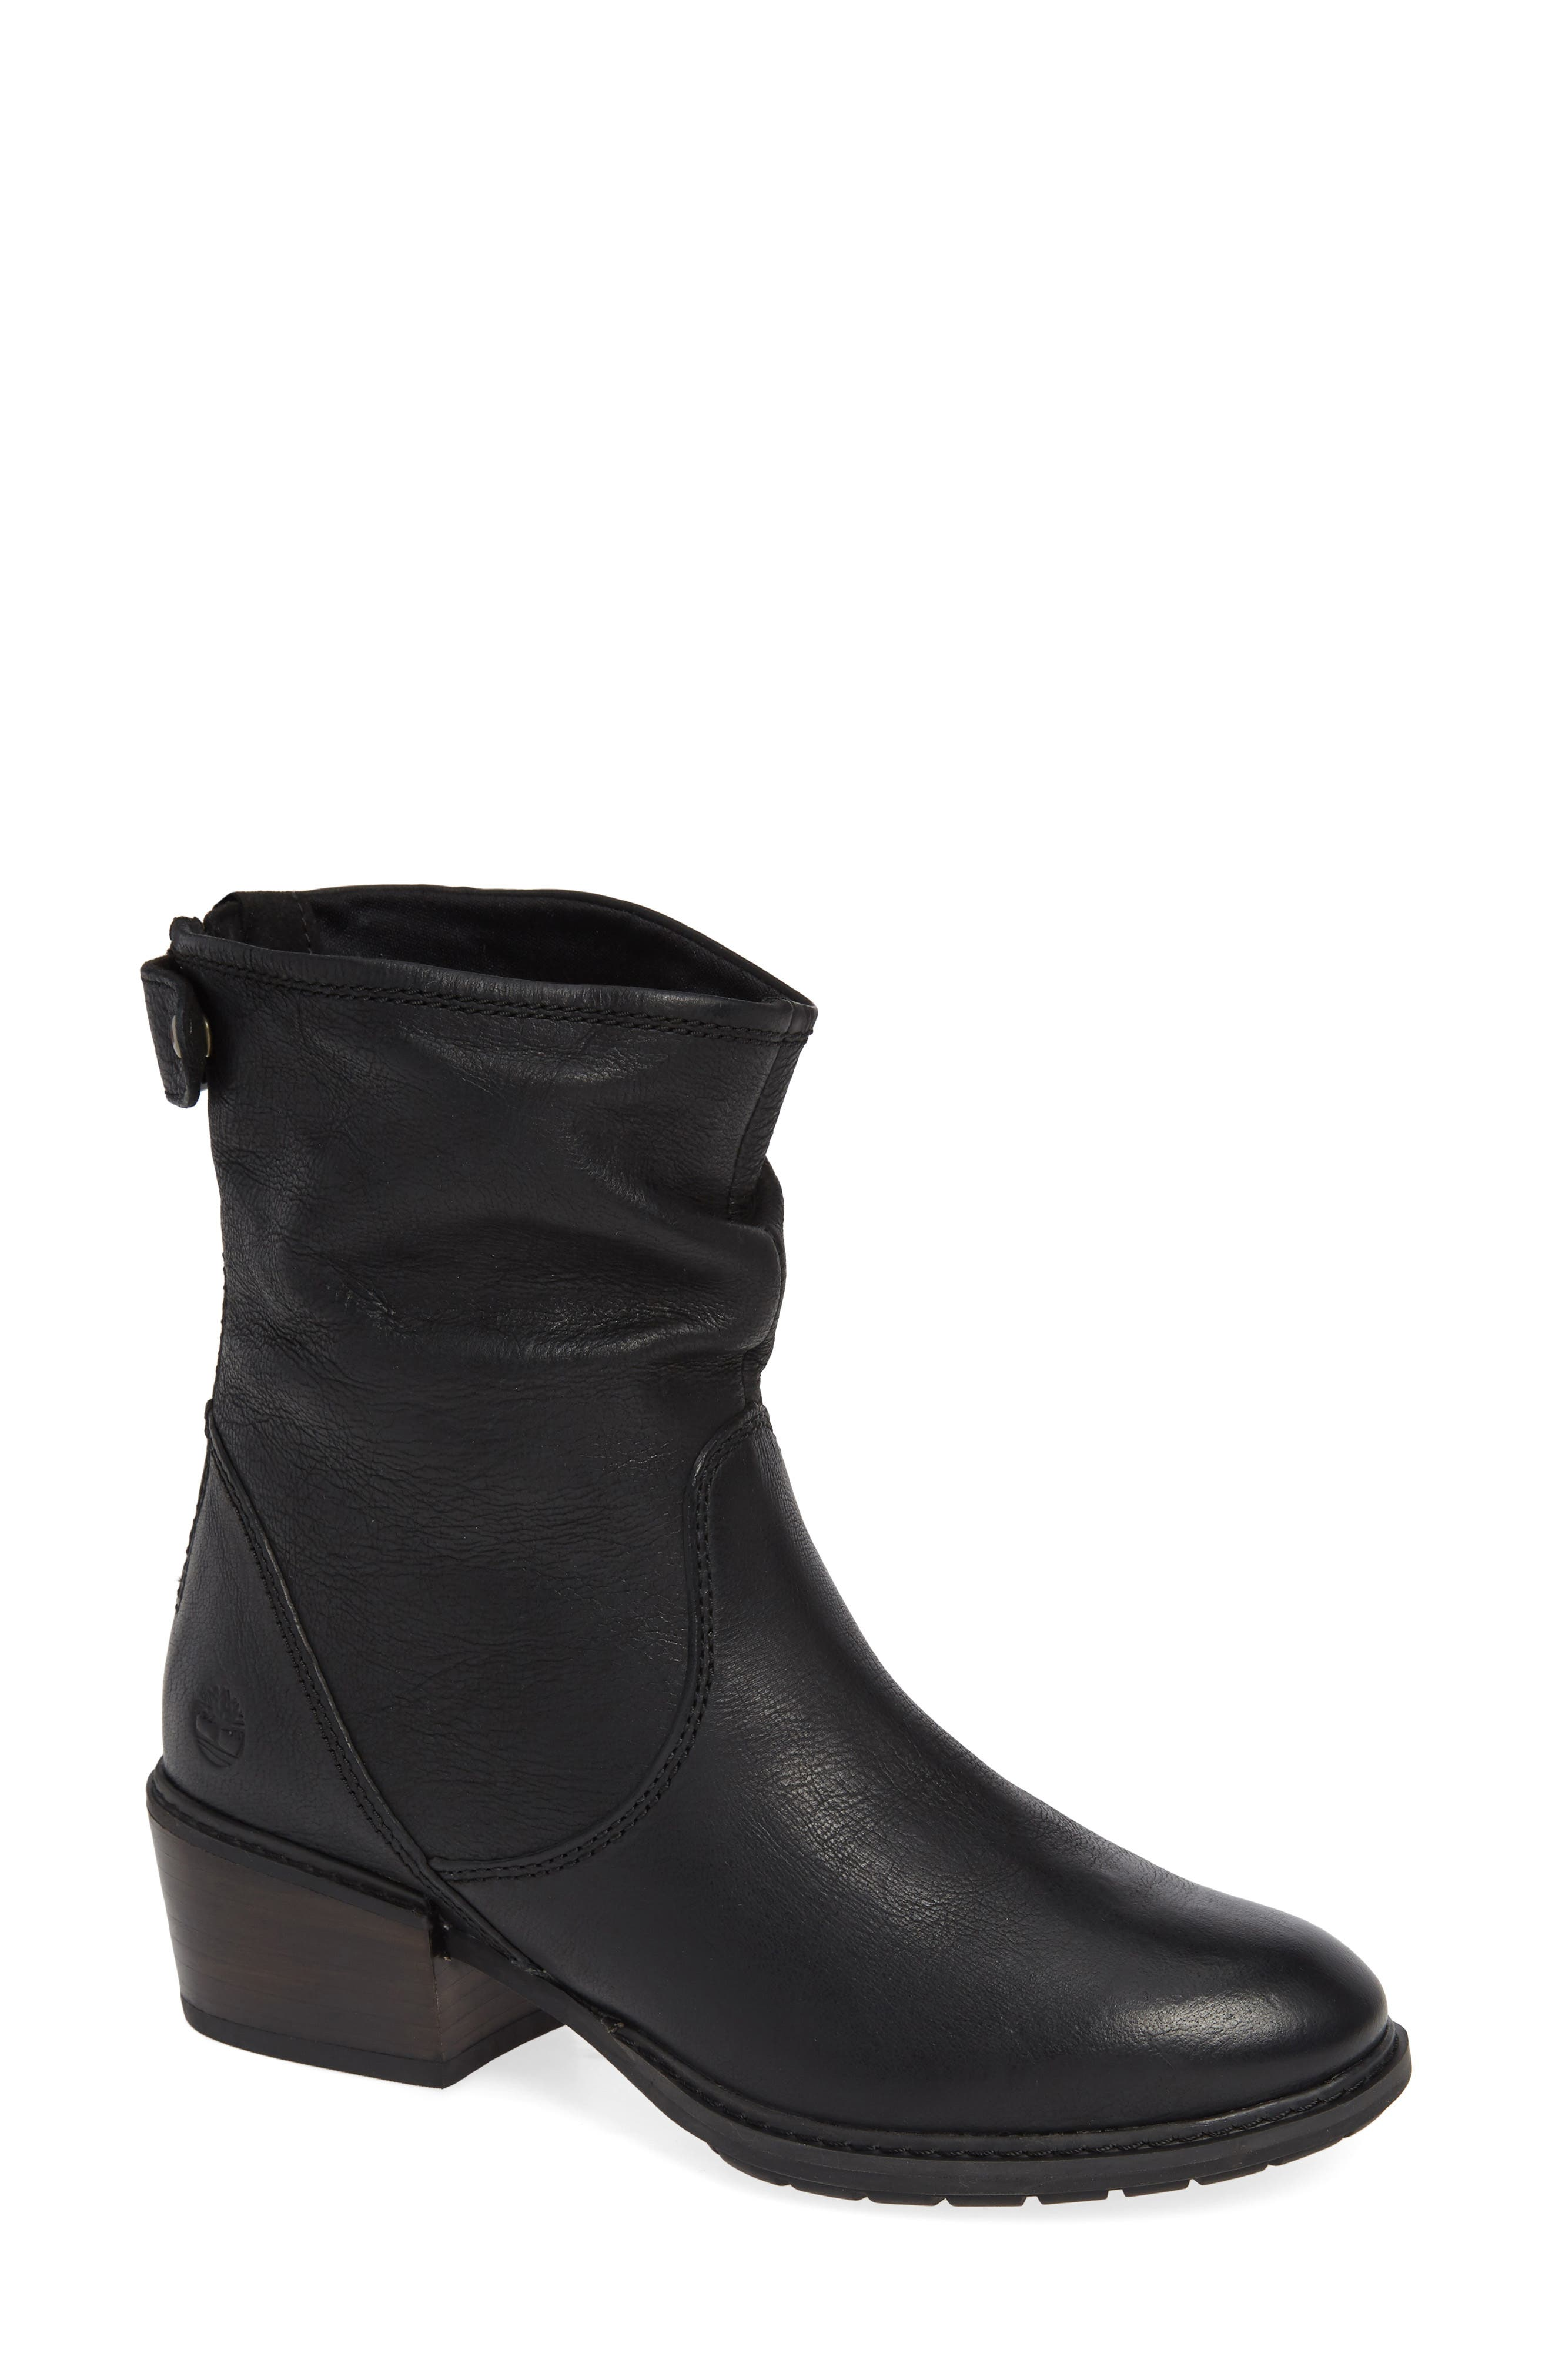 Sutherlin Bay Water Resistant Bootie,                             Main thumbnail 1, color,                             JET BLACK LEATHER